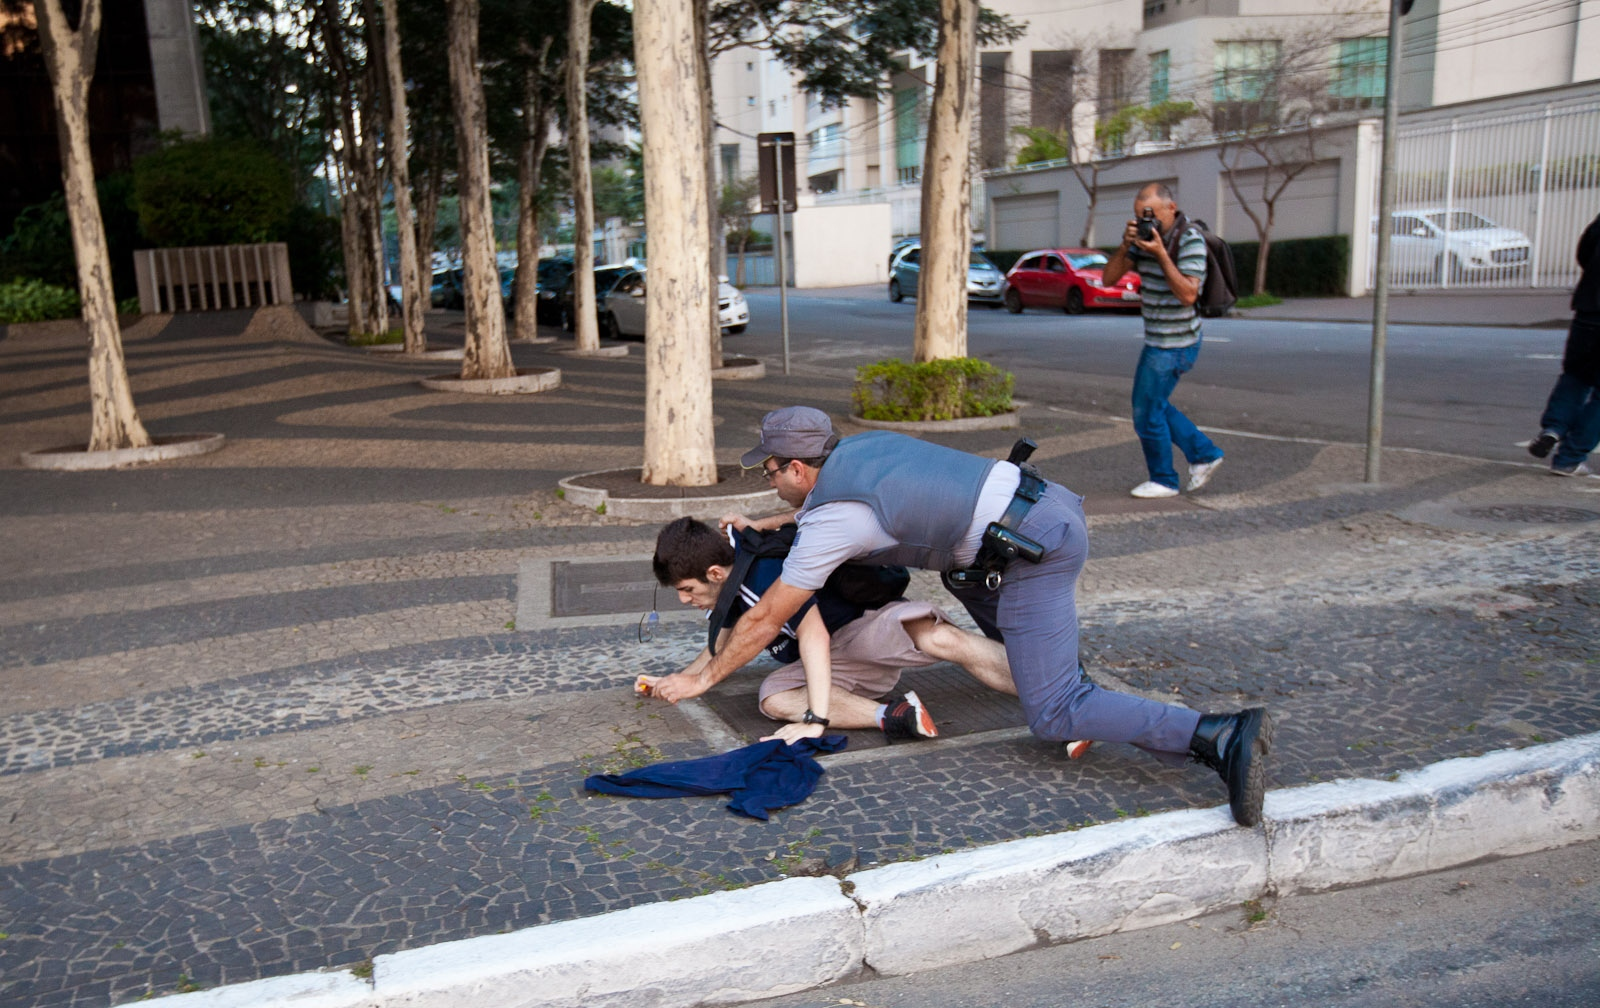 Policial tenta conter manifestante / Police try to contain protester